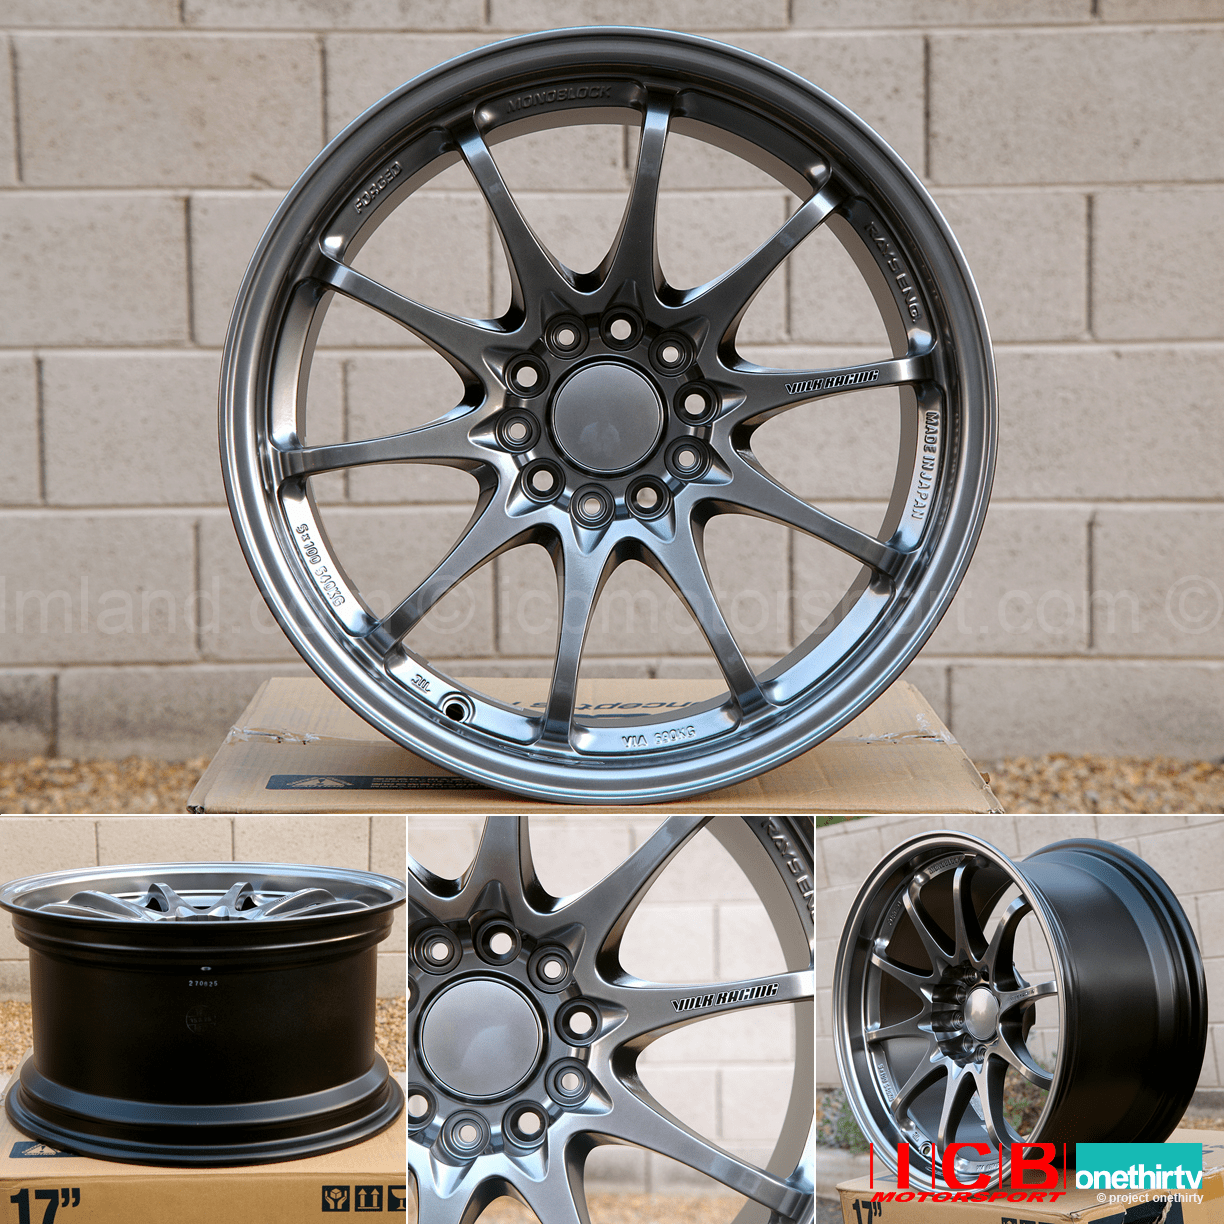 Rays Volk Racing CE28N Wheels 17X9 5X114.3 +22 Offset Concave Face Formula Silver